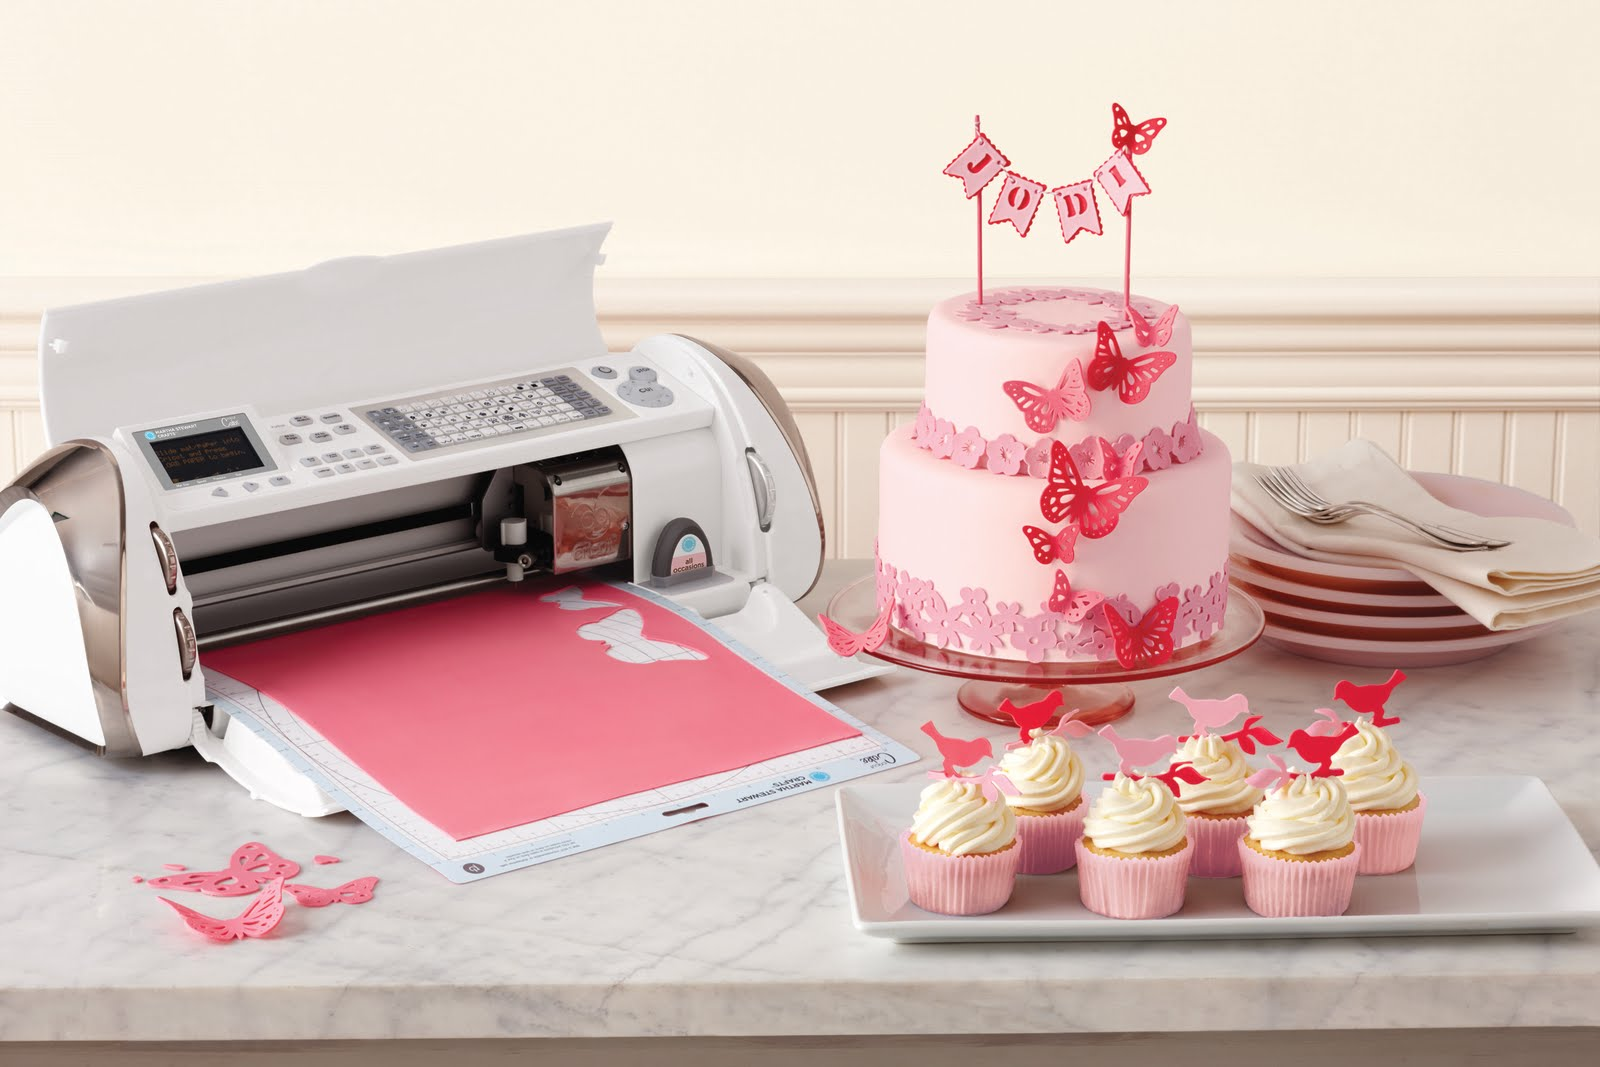 What Cricut Cartridges Can You Use With The Cake Cricut